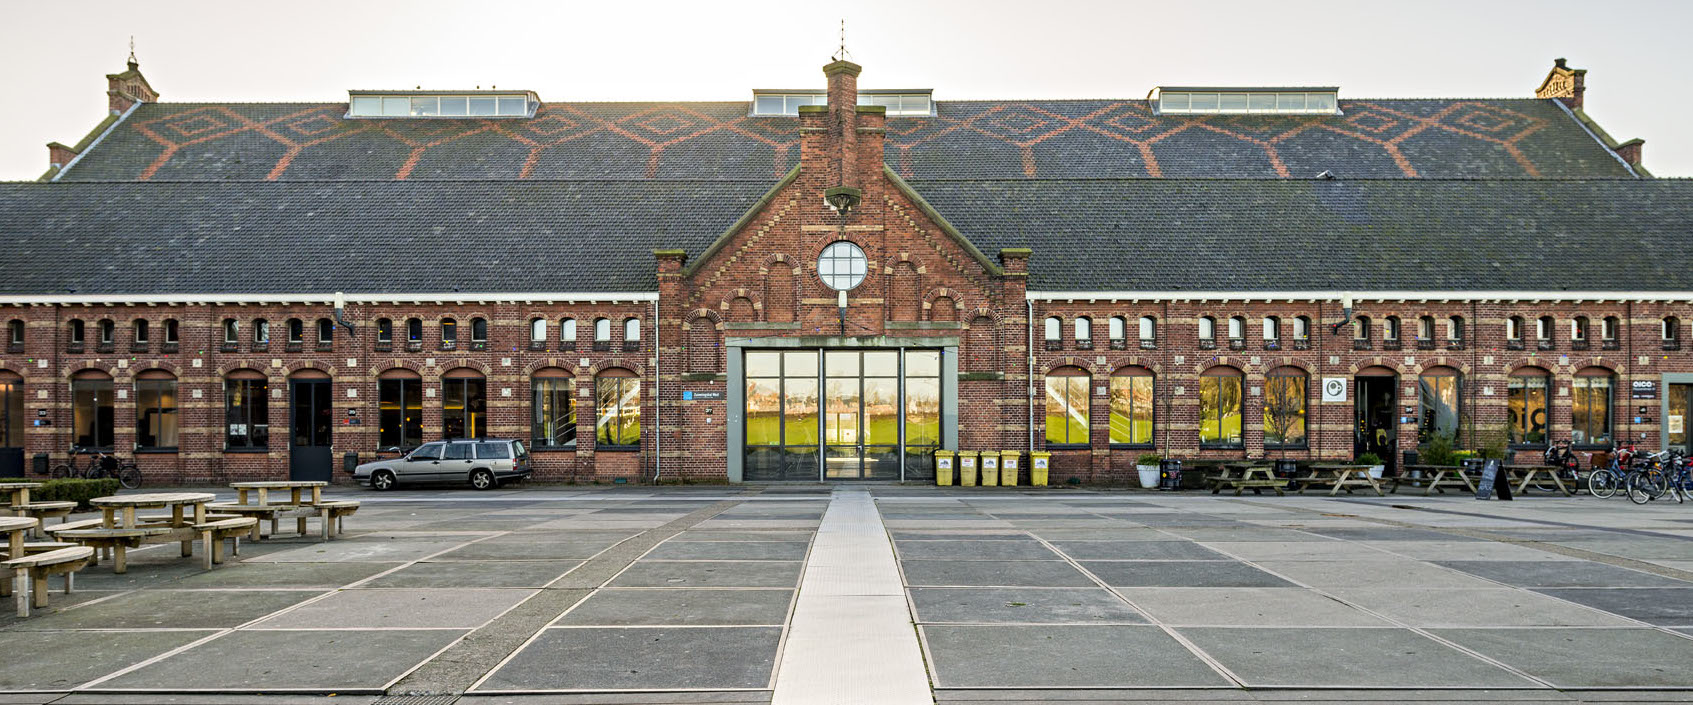 Zuiveringshal West, Westergasfabriek